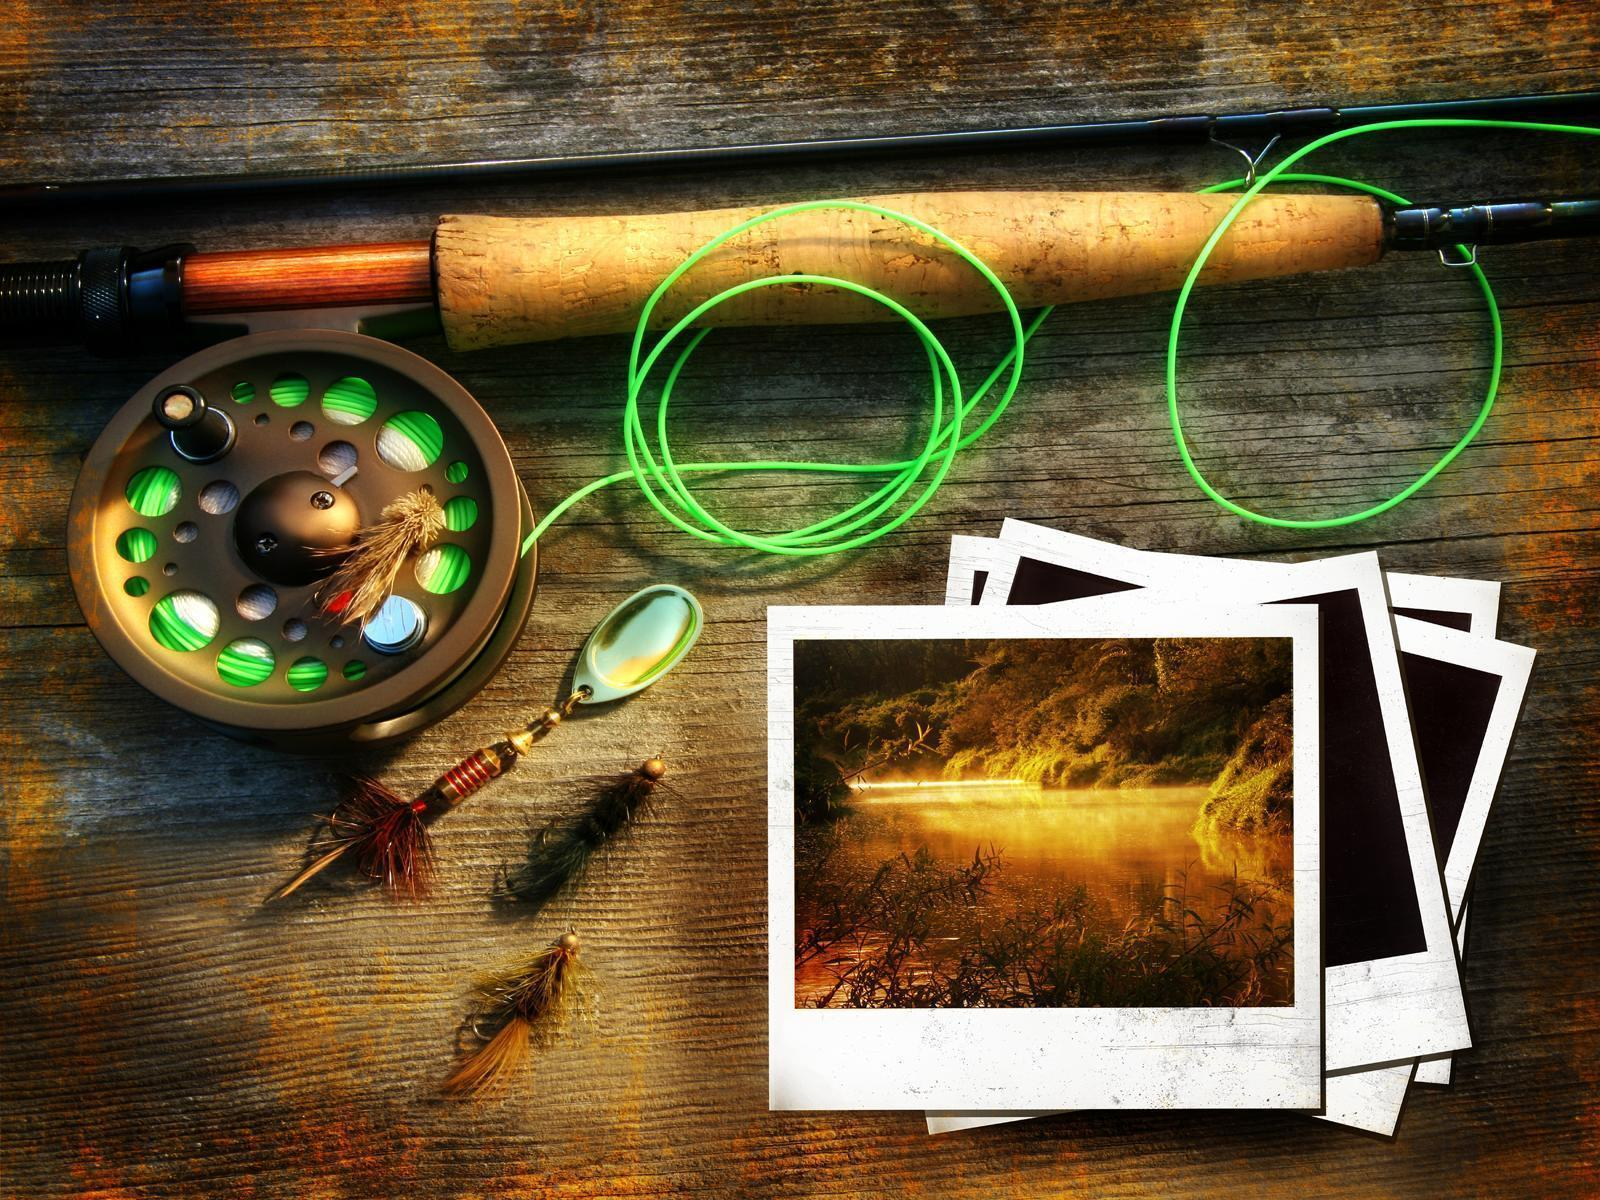 trout fly fishing wallpaper - photo #30